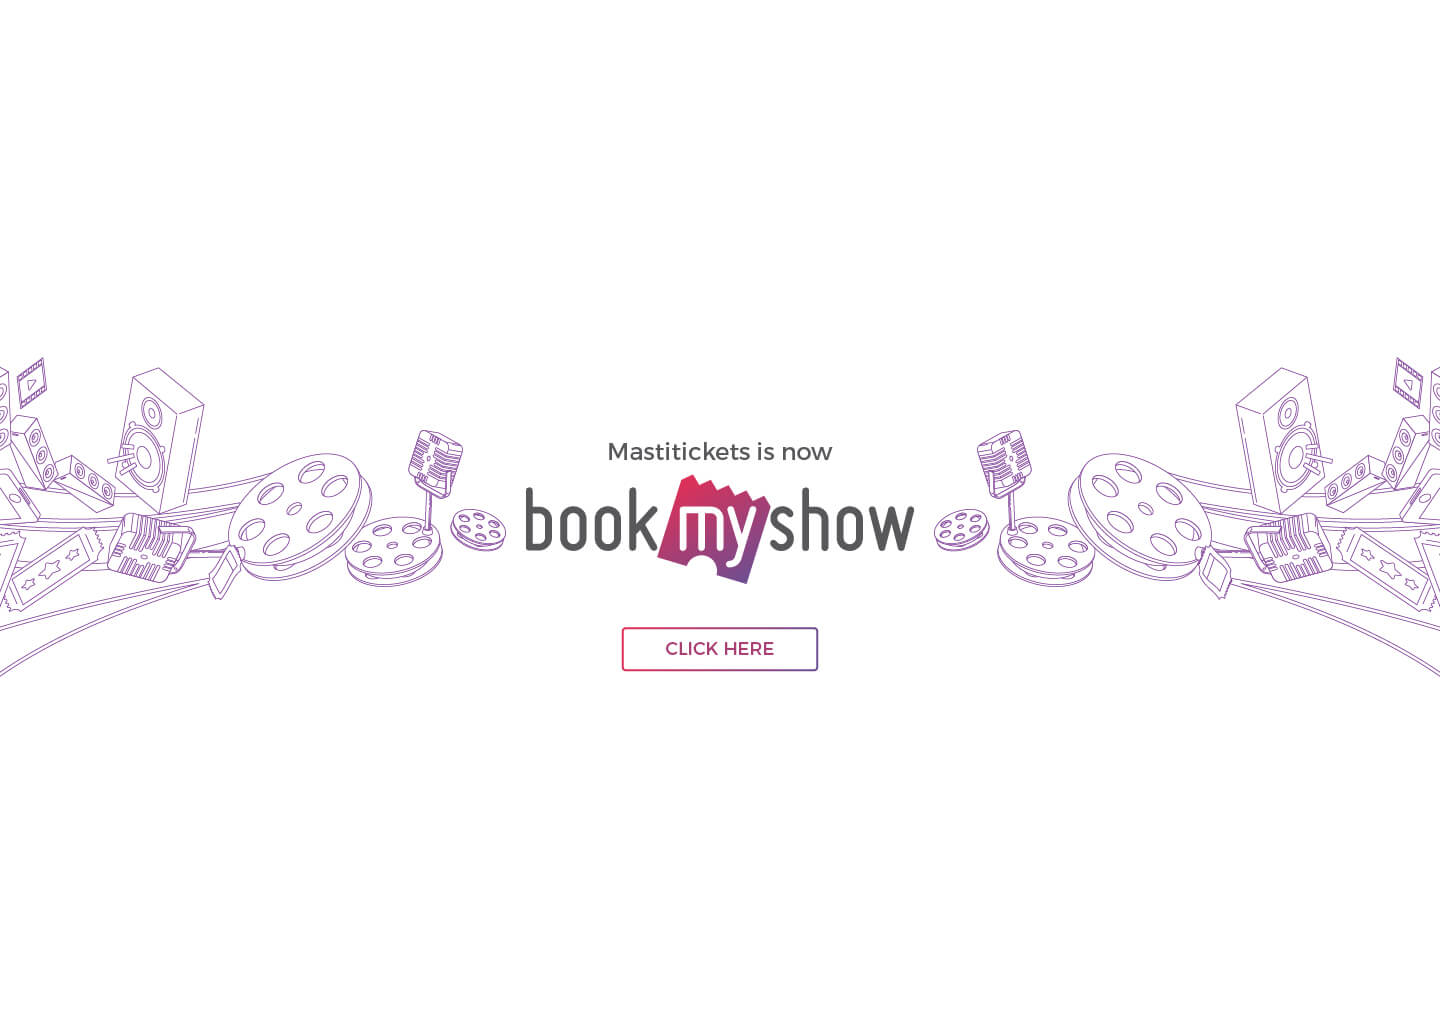 Mastitickets is now BookMyShow